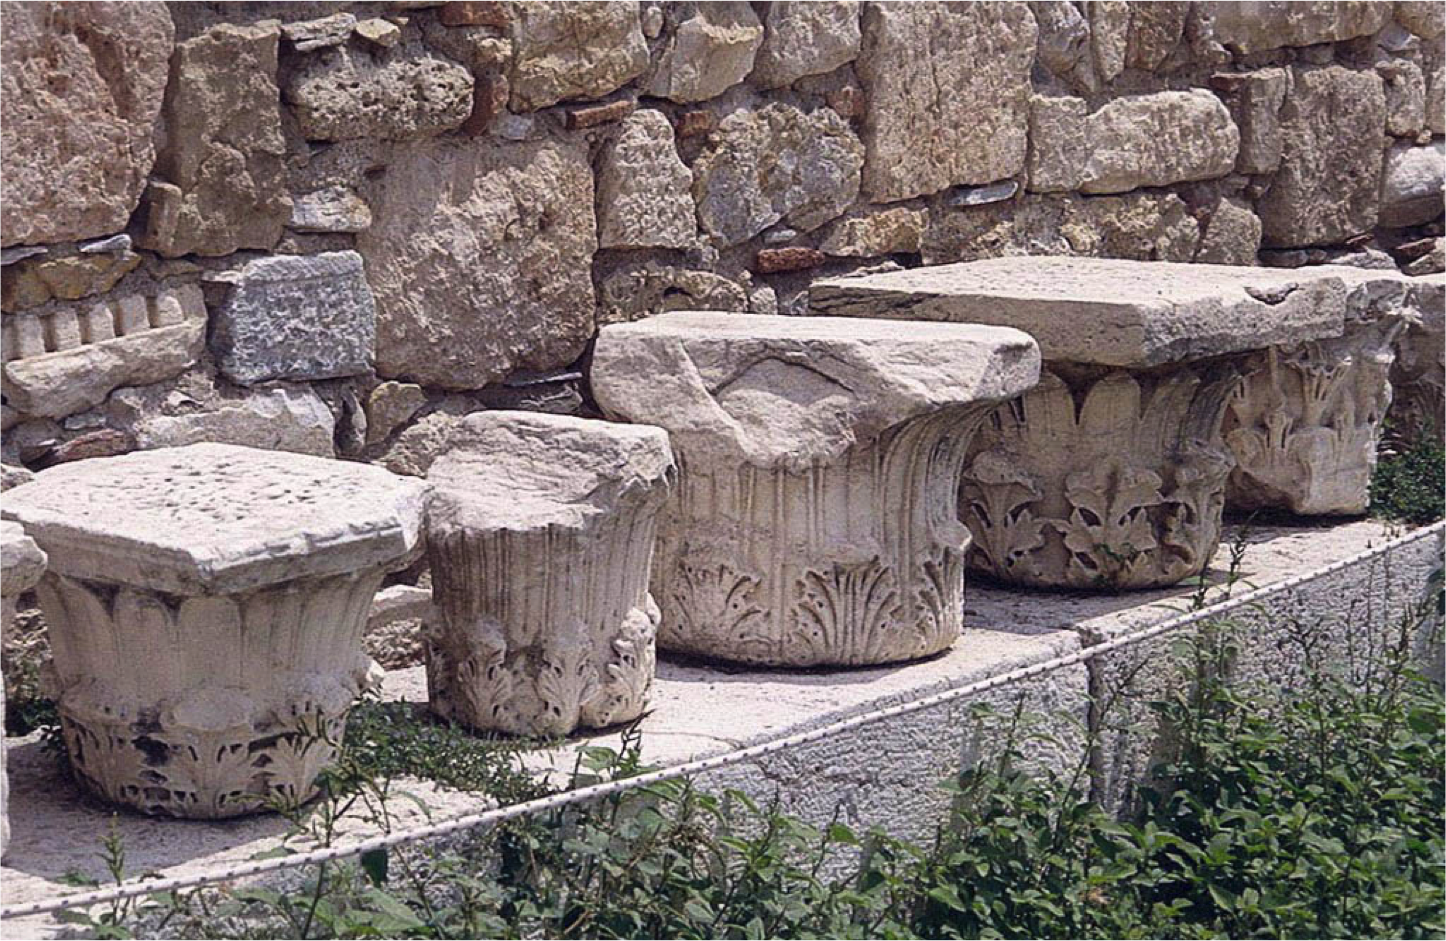 However, as this photograph attests, in Athens there survive many versions of this capital type.  This set is found right next to our tower, and within the archeological zone of the Roman Agora.   In the scholarly literature our capital is usually referred to as belonging to the Pergamene Type.  So many manifestations of this capital were found in the site of the ancient city of Pergamon by the German archaeologists who first excavated there, that they concluded this type was first created in this major Hellenistic City.